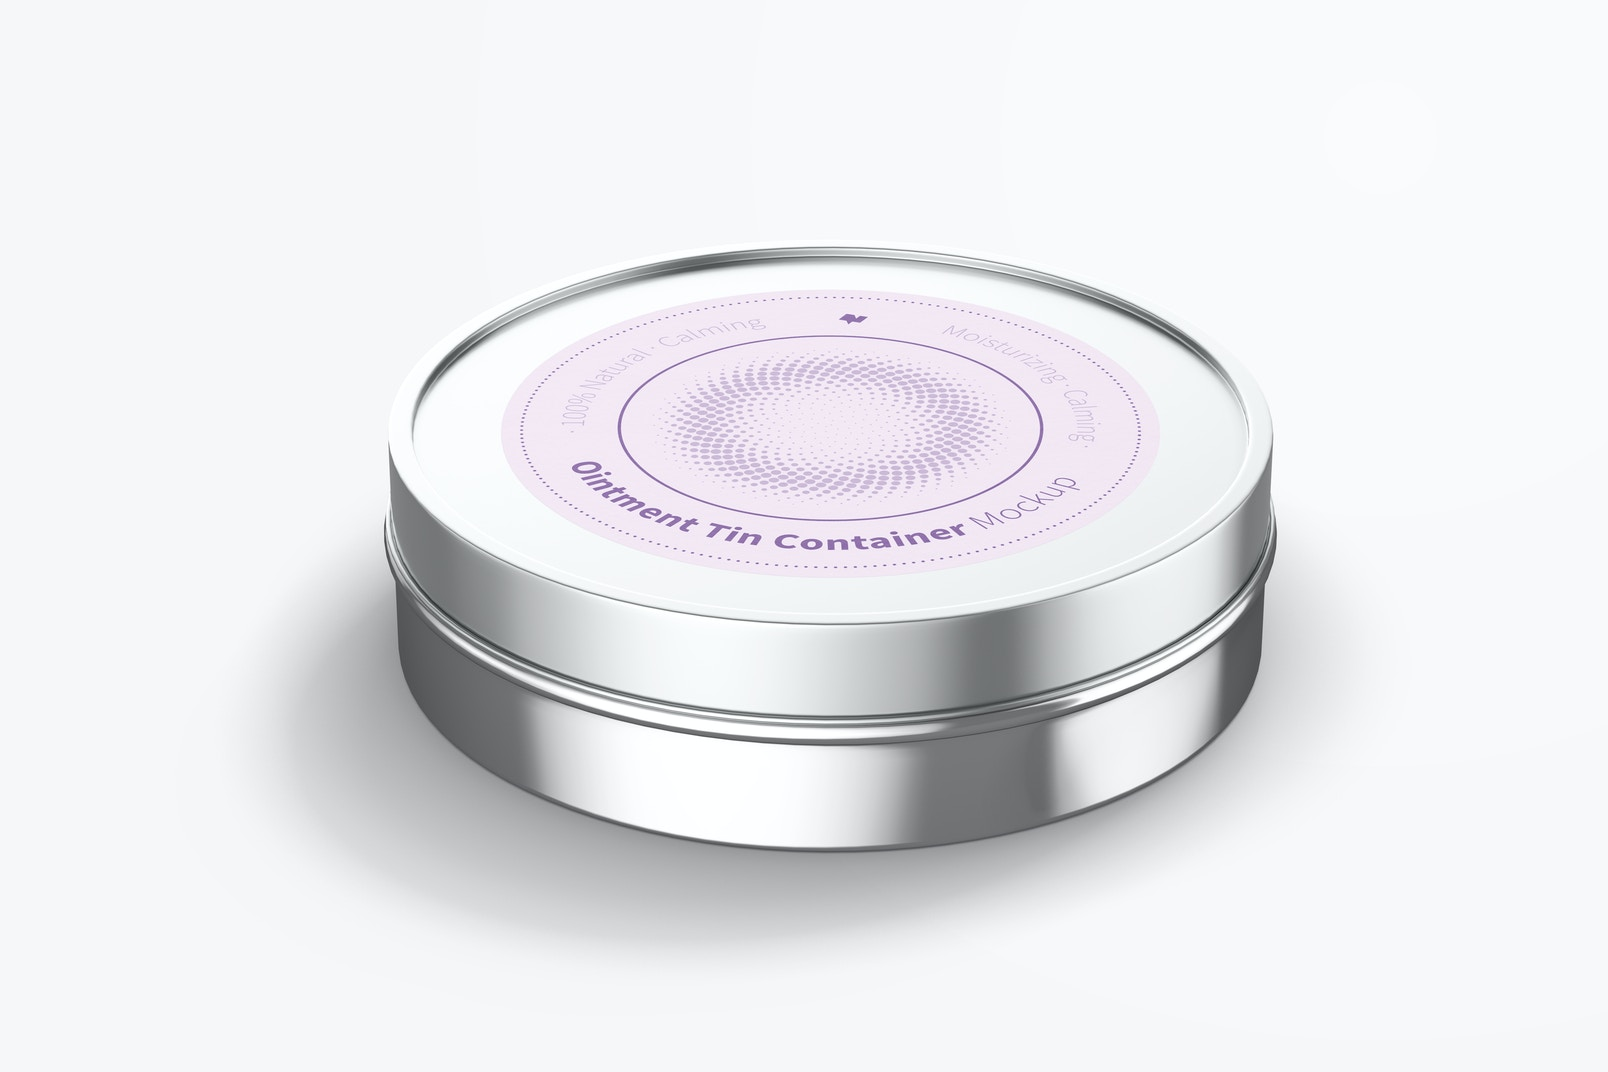 Ointment Tin Container Mockup